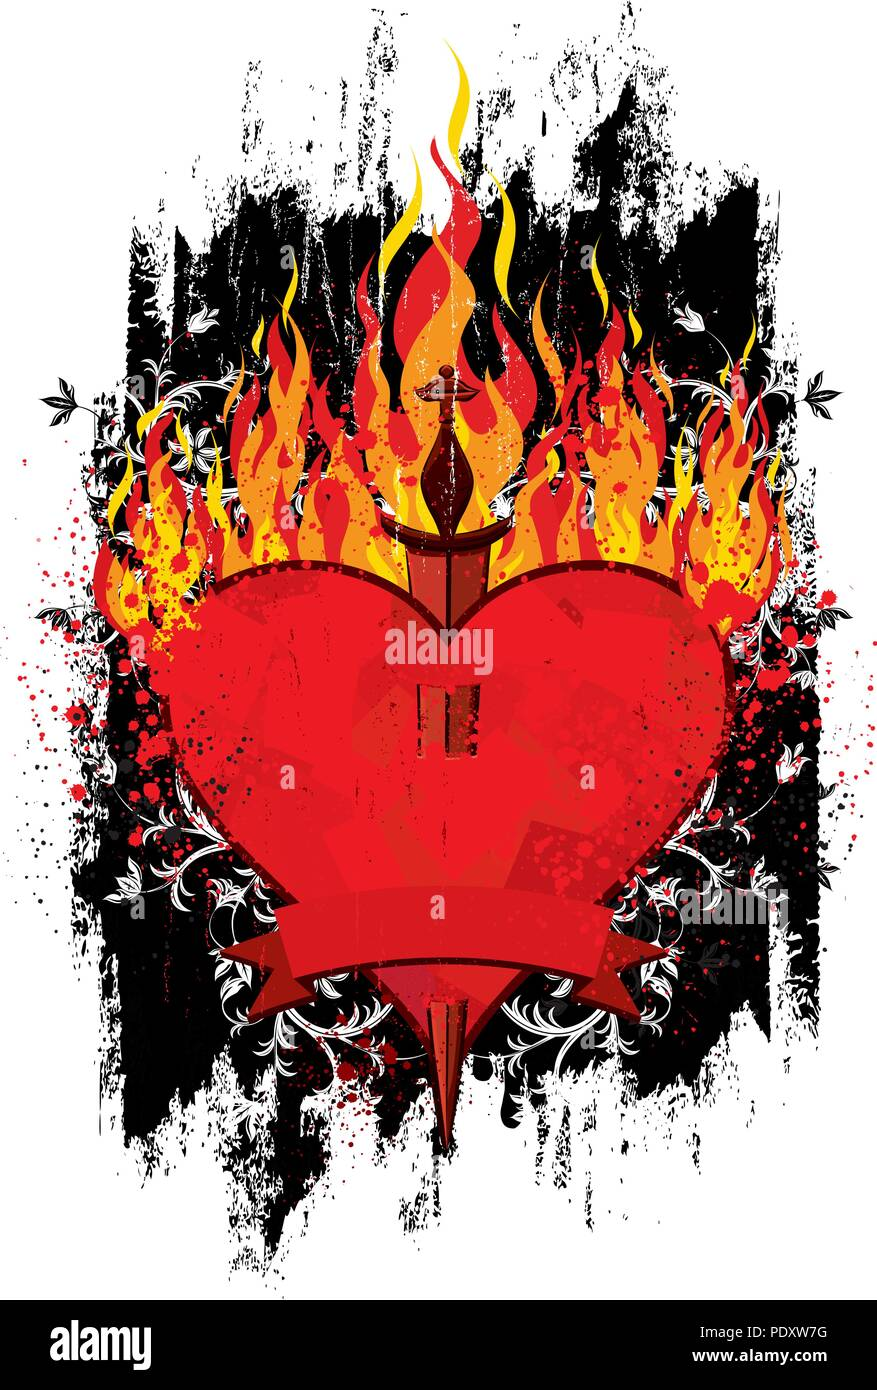 Burning Heart Dagger. A burning heart with a dagger through it over a textured background. - Stock Vector